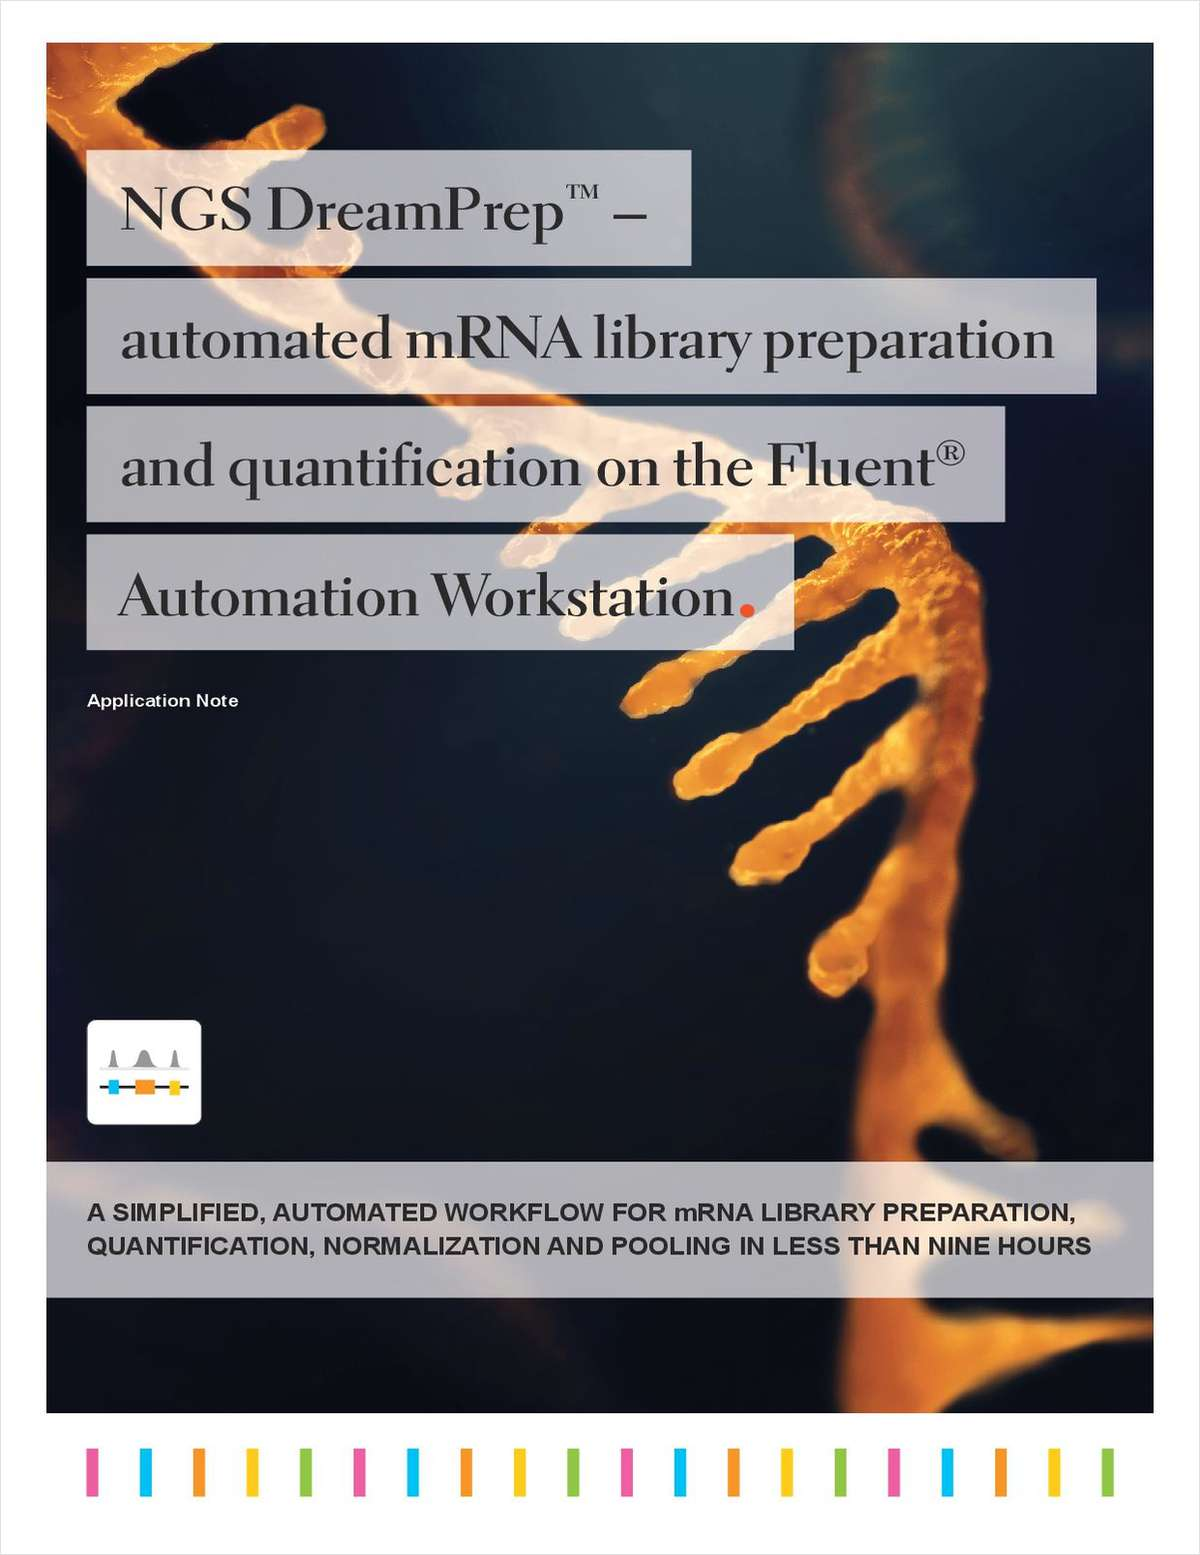 DreamPrep NGS -- Automated mRNA Library Preparation and Quantification on the Fluent Automation Workstation